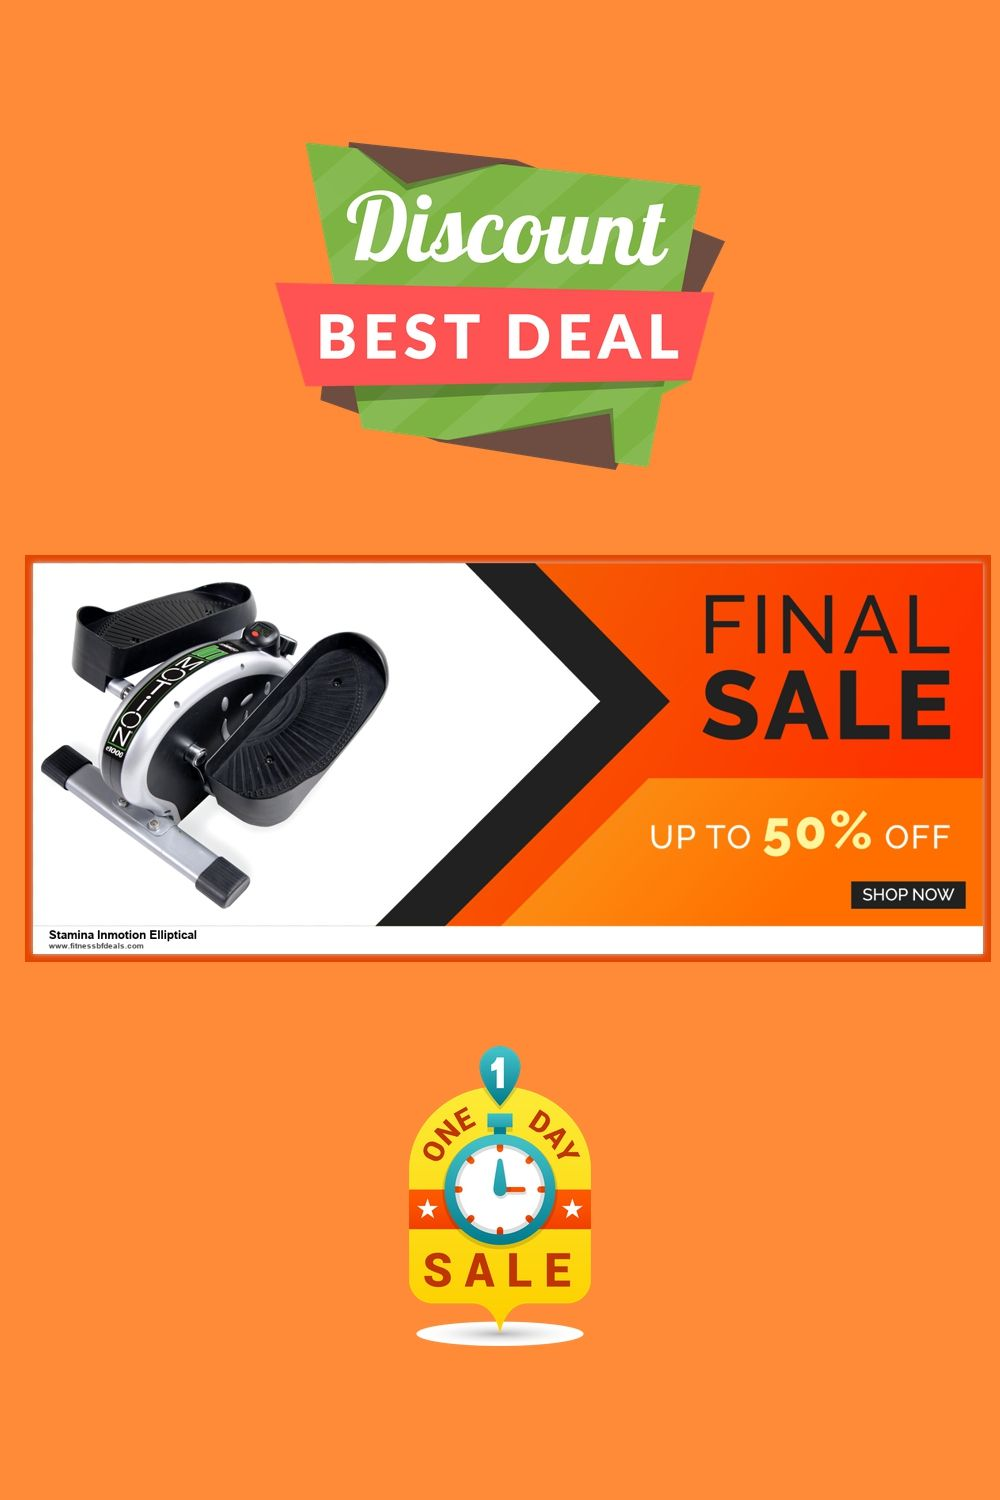 13 Best Stamina Inmotion Elliptical Black Friday Deals Up To 40 Off 2020 In 2020 Stamina Workout Videos Free Quick Workout